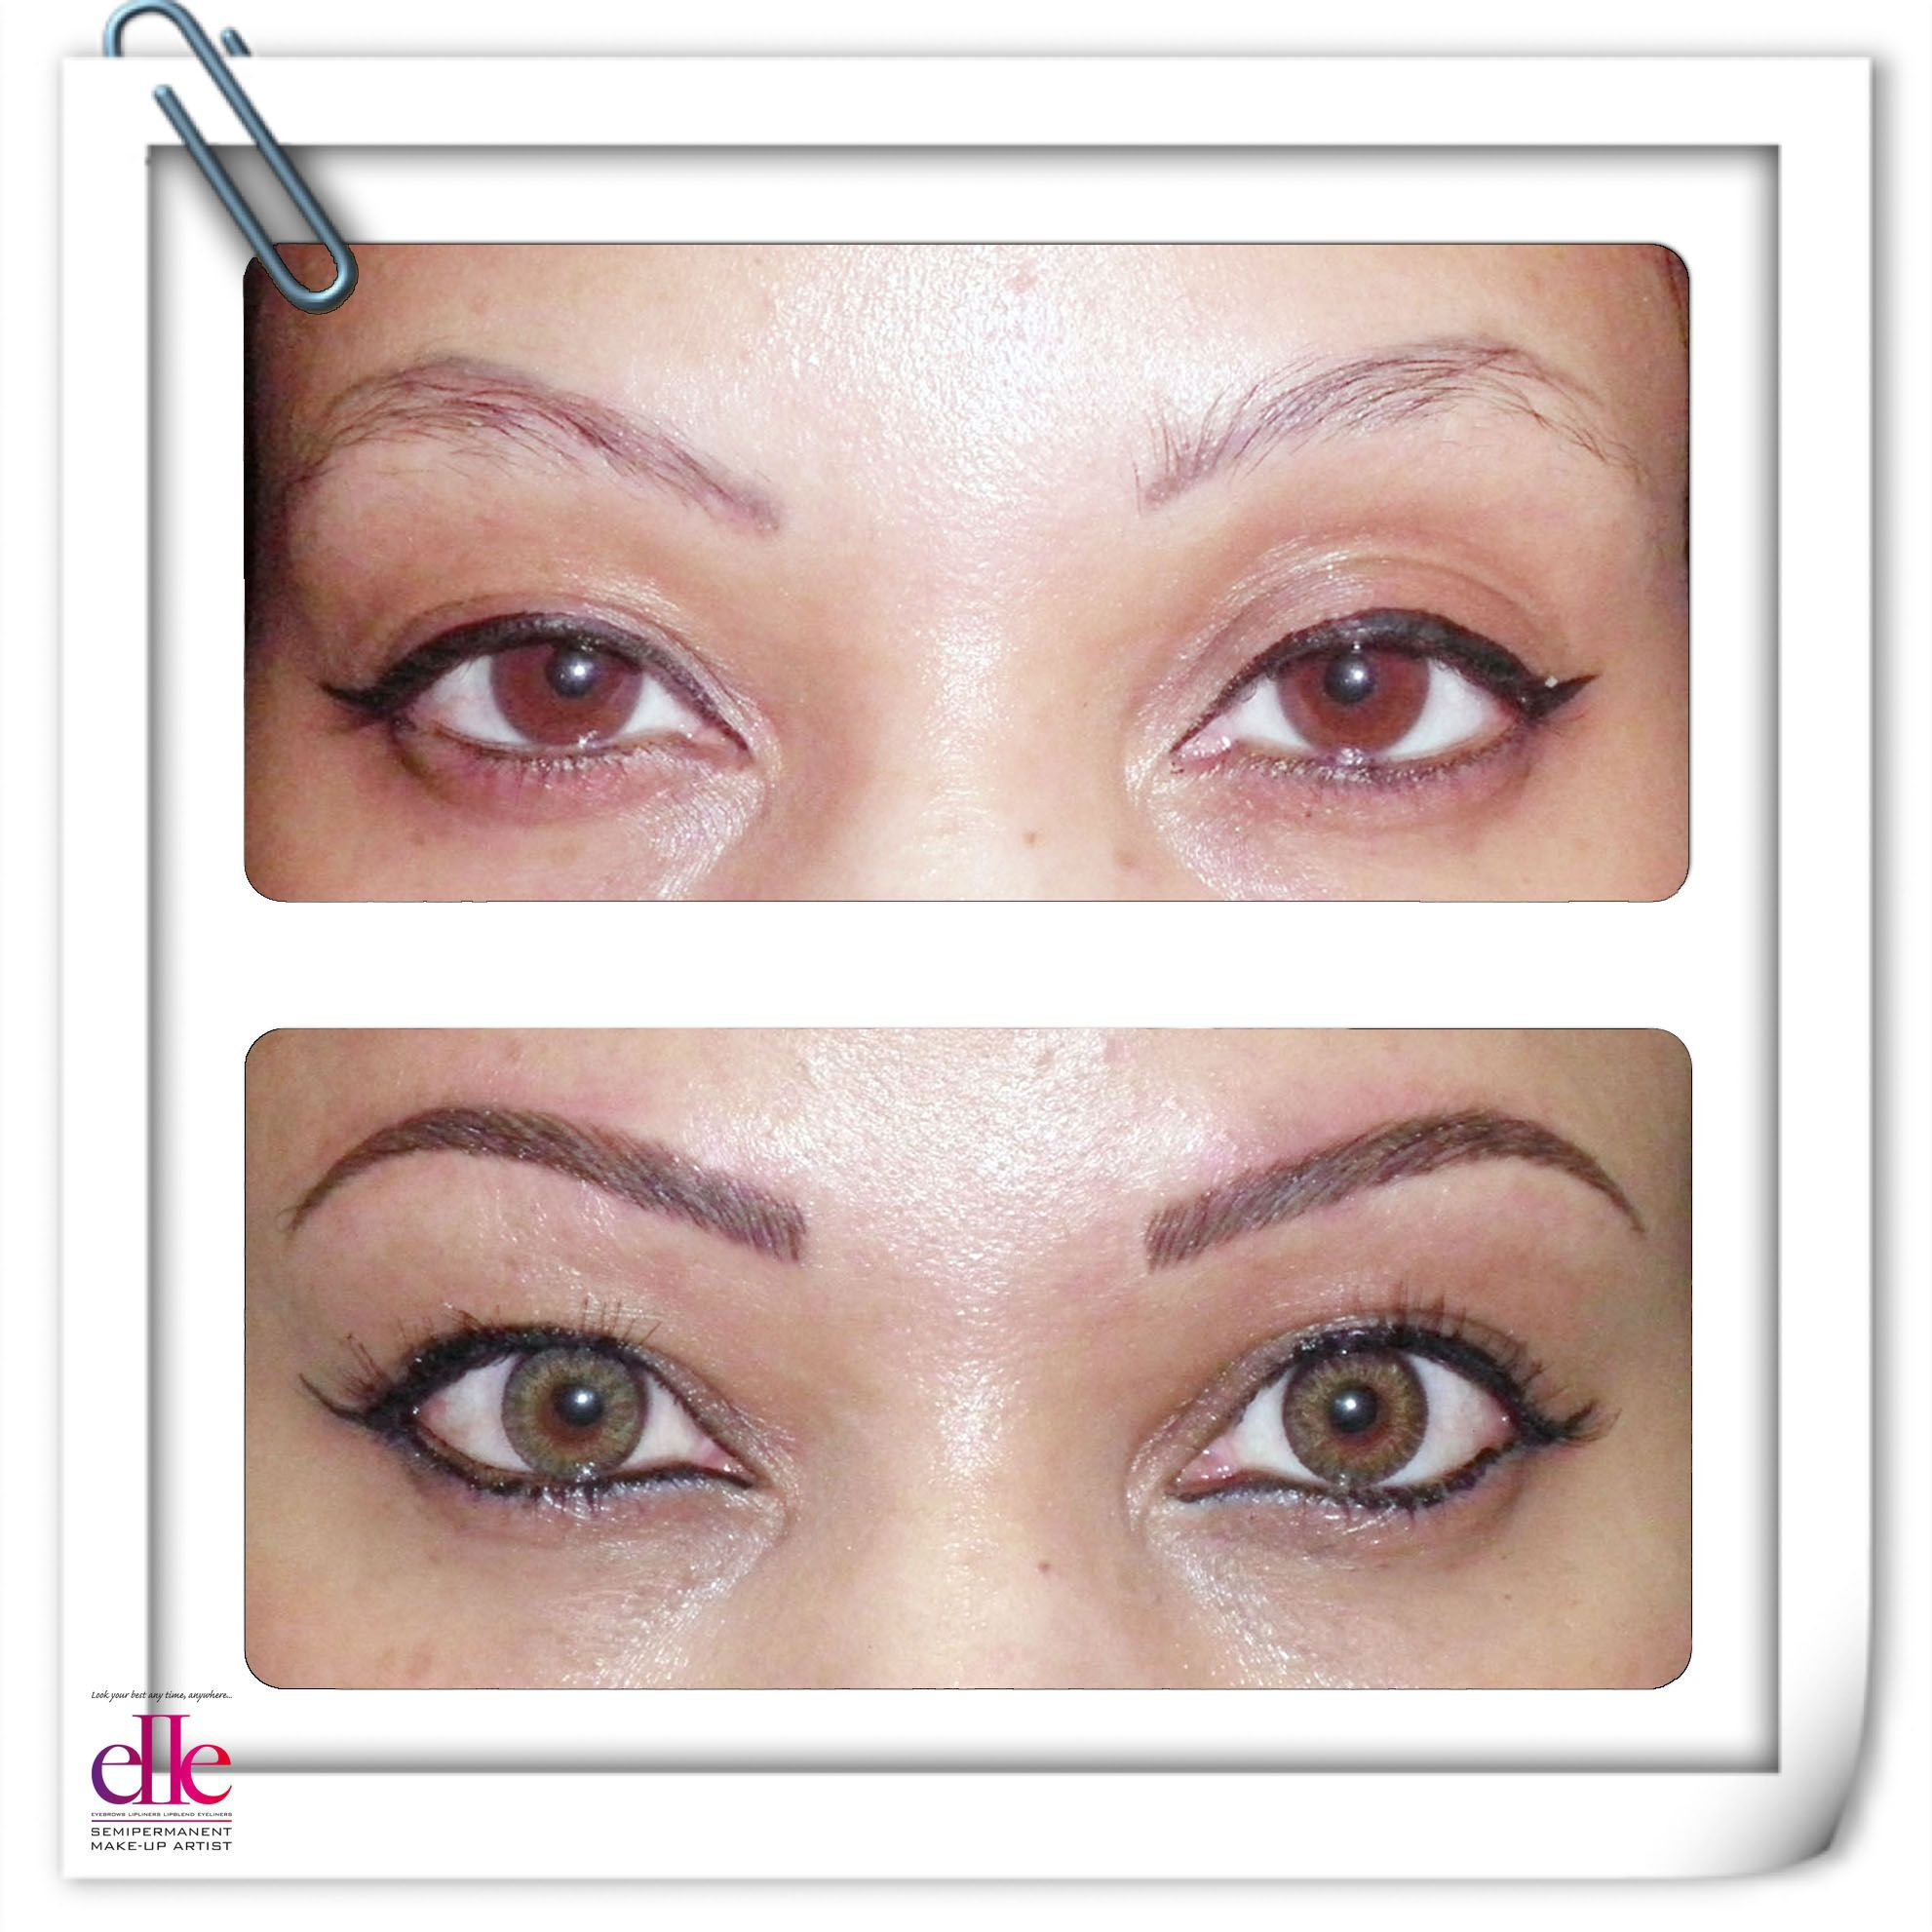 BEFORE and AFTER. Faded semipermanent makeup has been